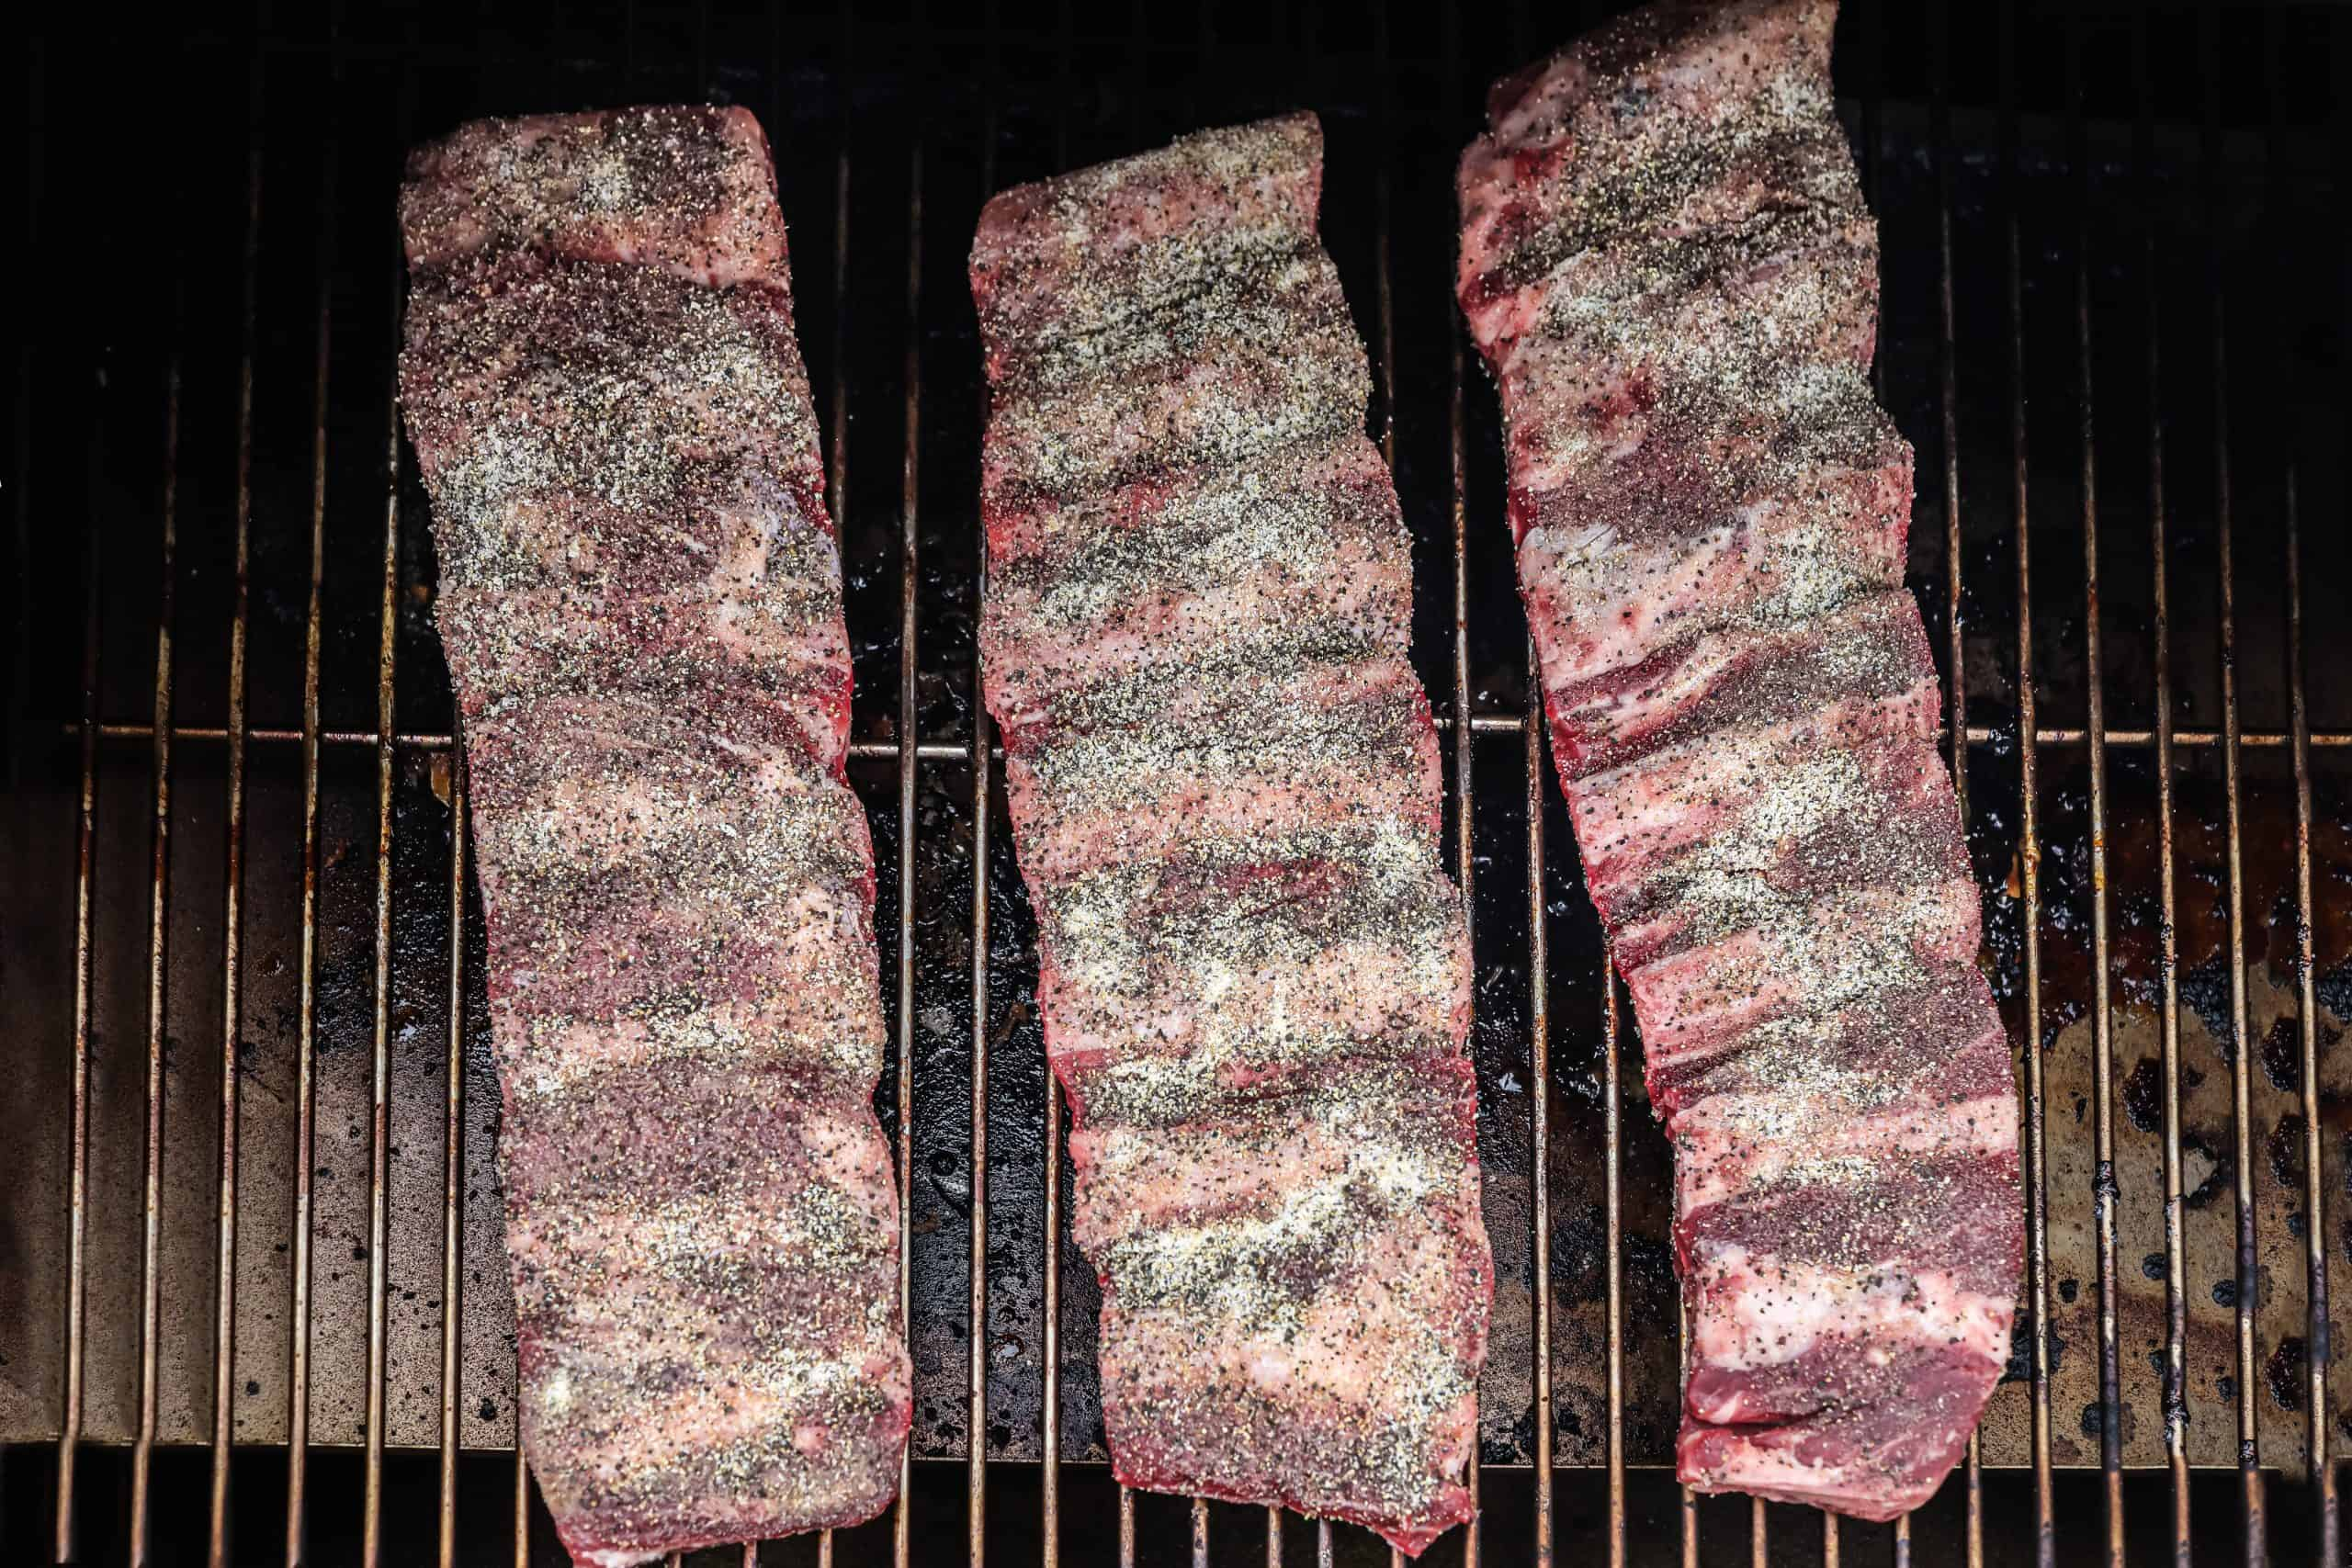 Ribs being placed on the smoker.